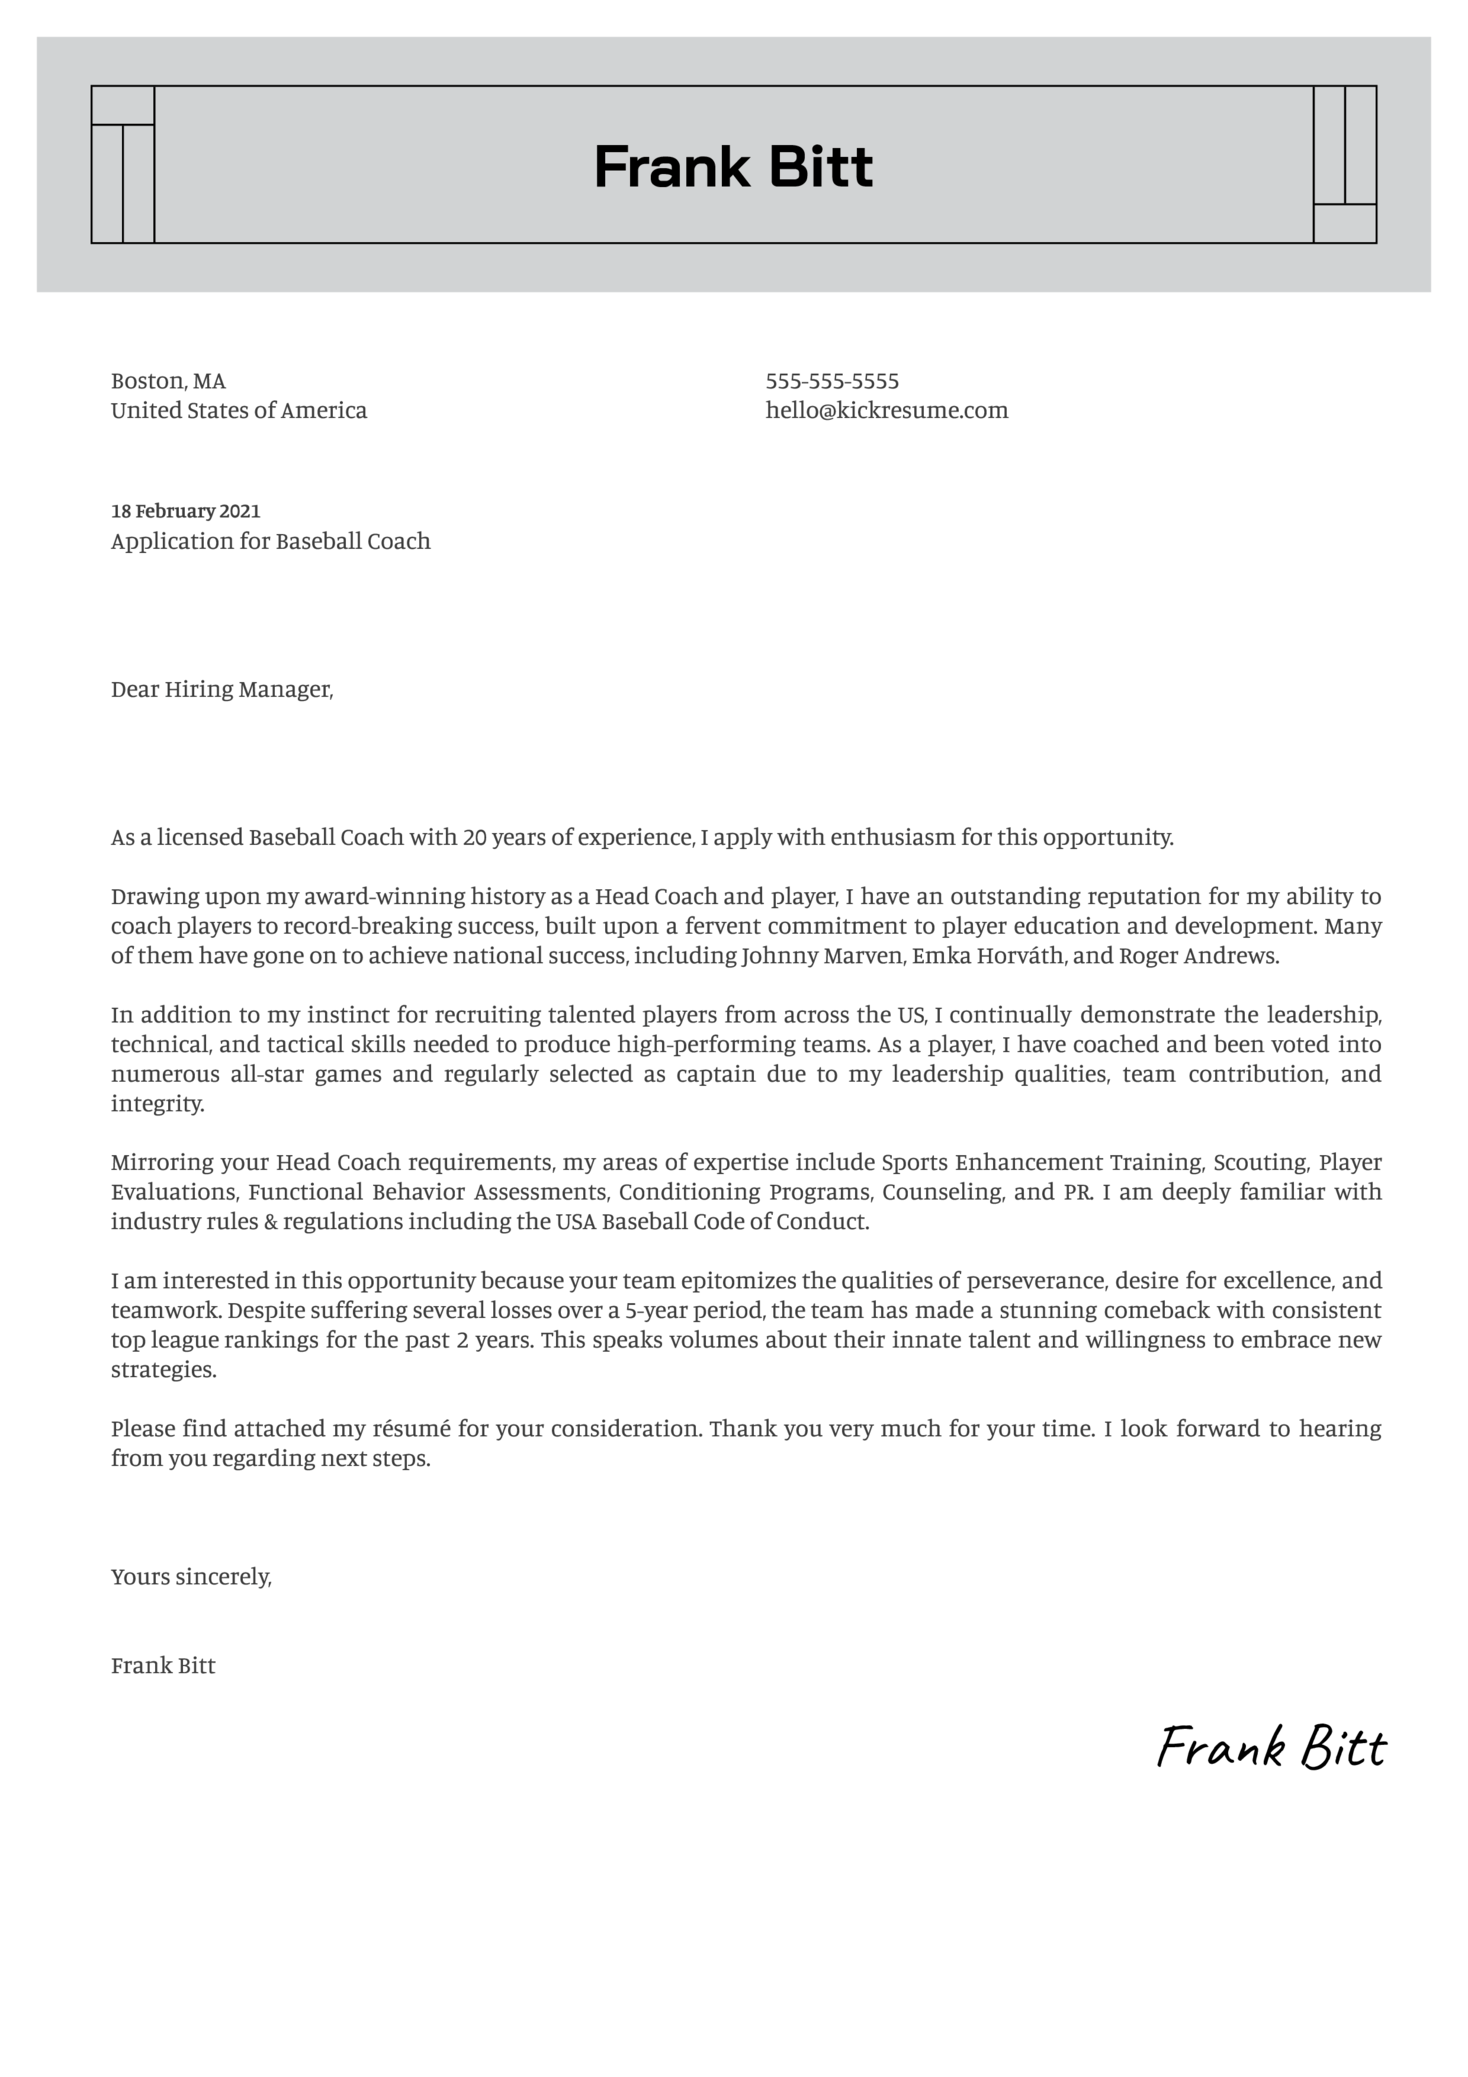 Head Coach Cover Letter Template